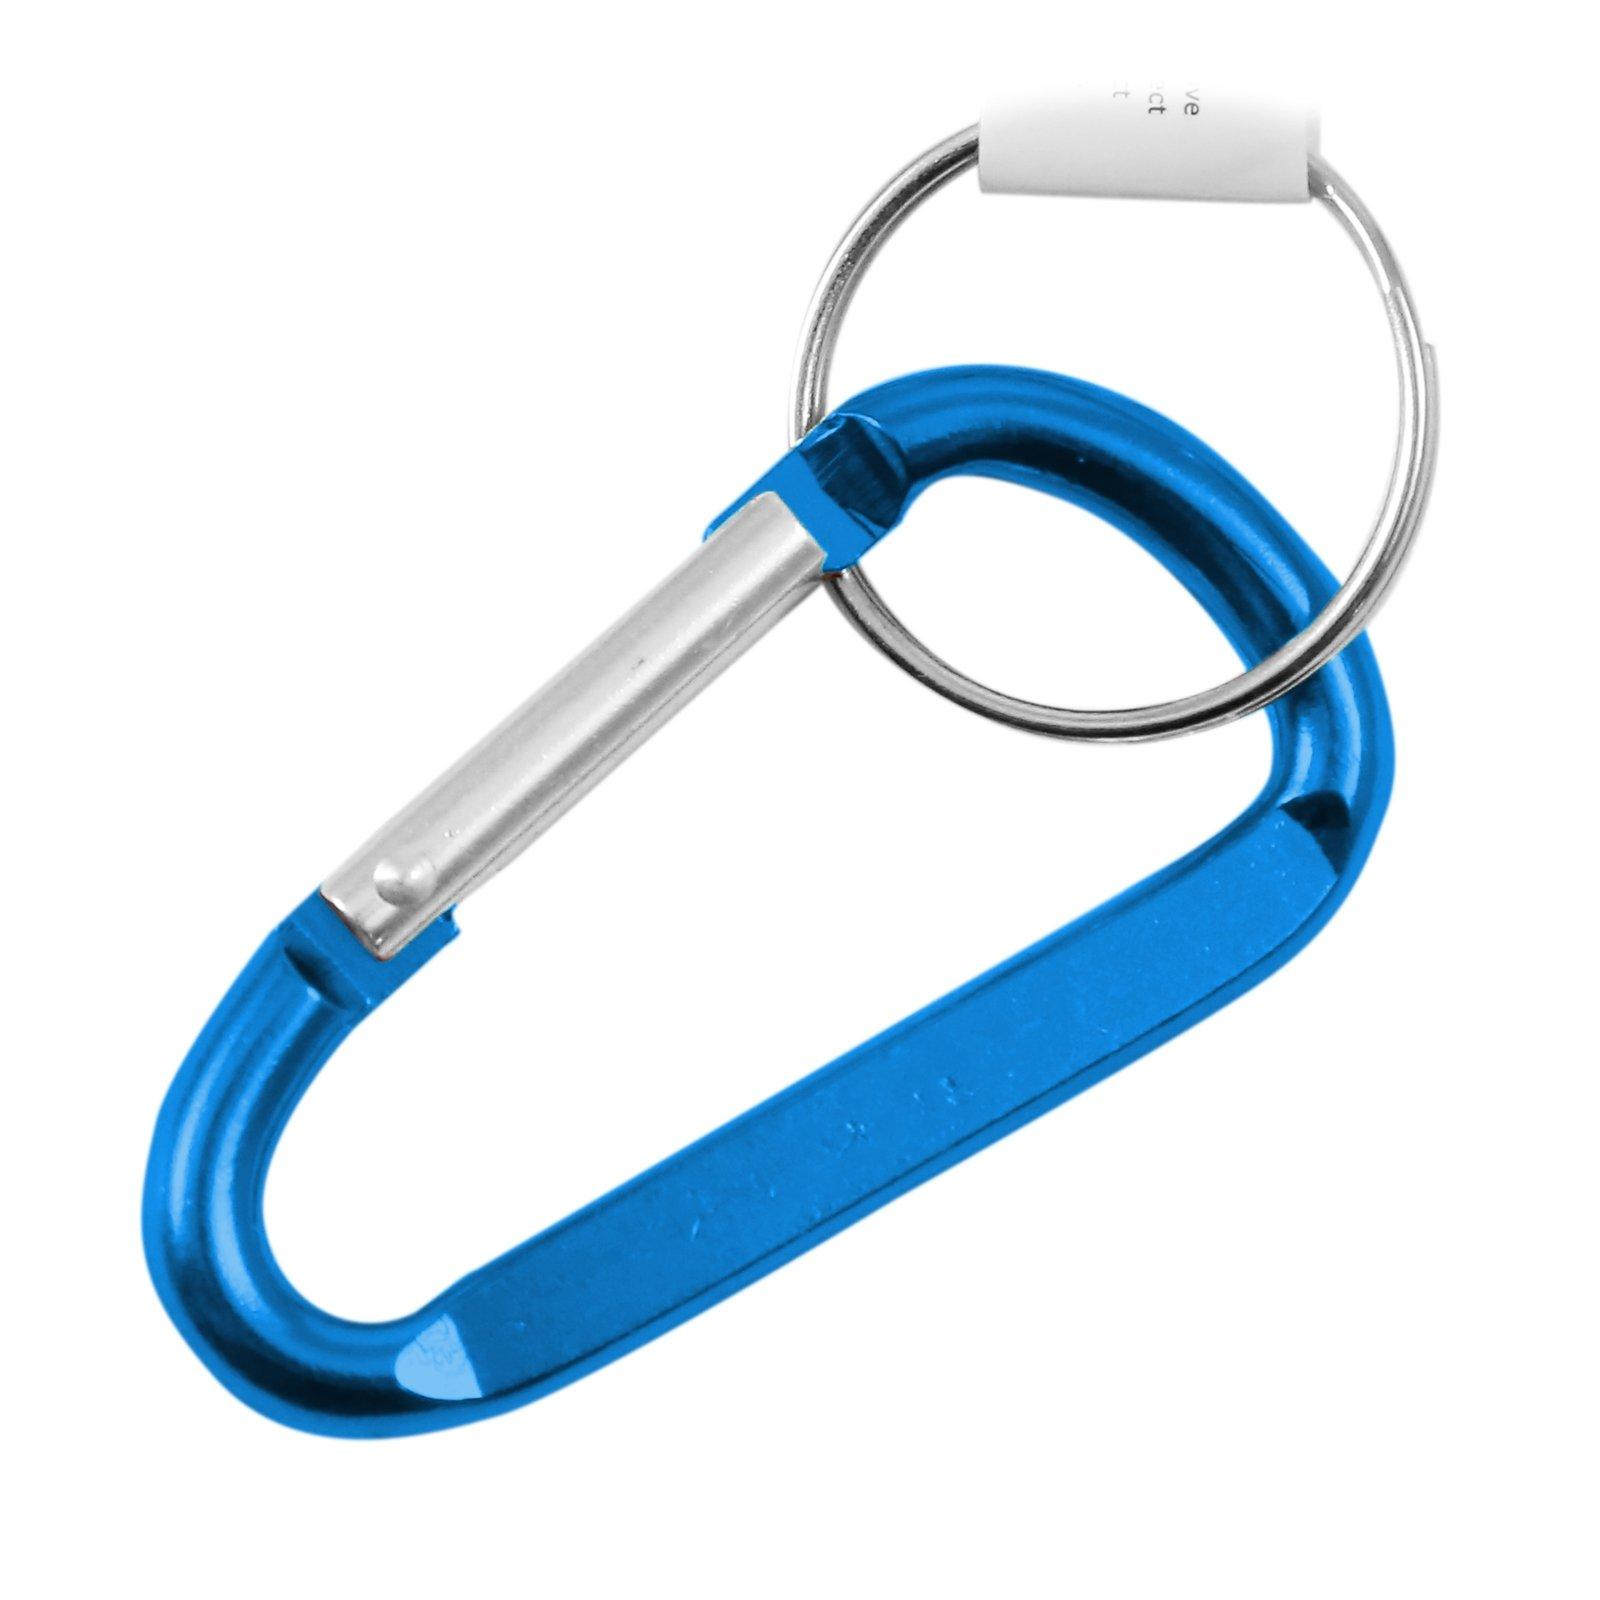 2 Inch Extra Small Carabiner Key Chain - Light Blue